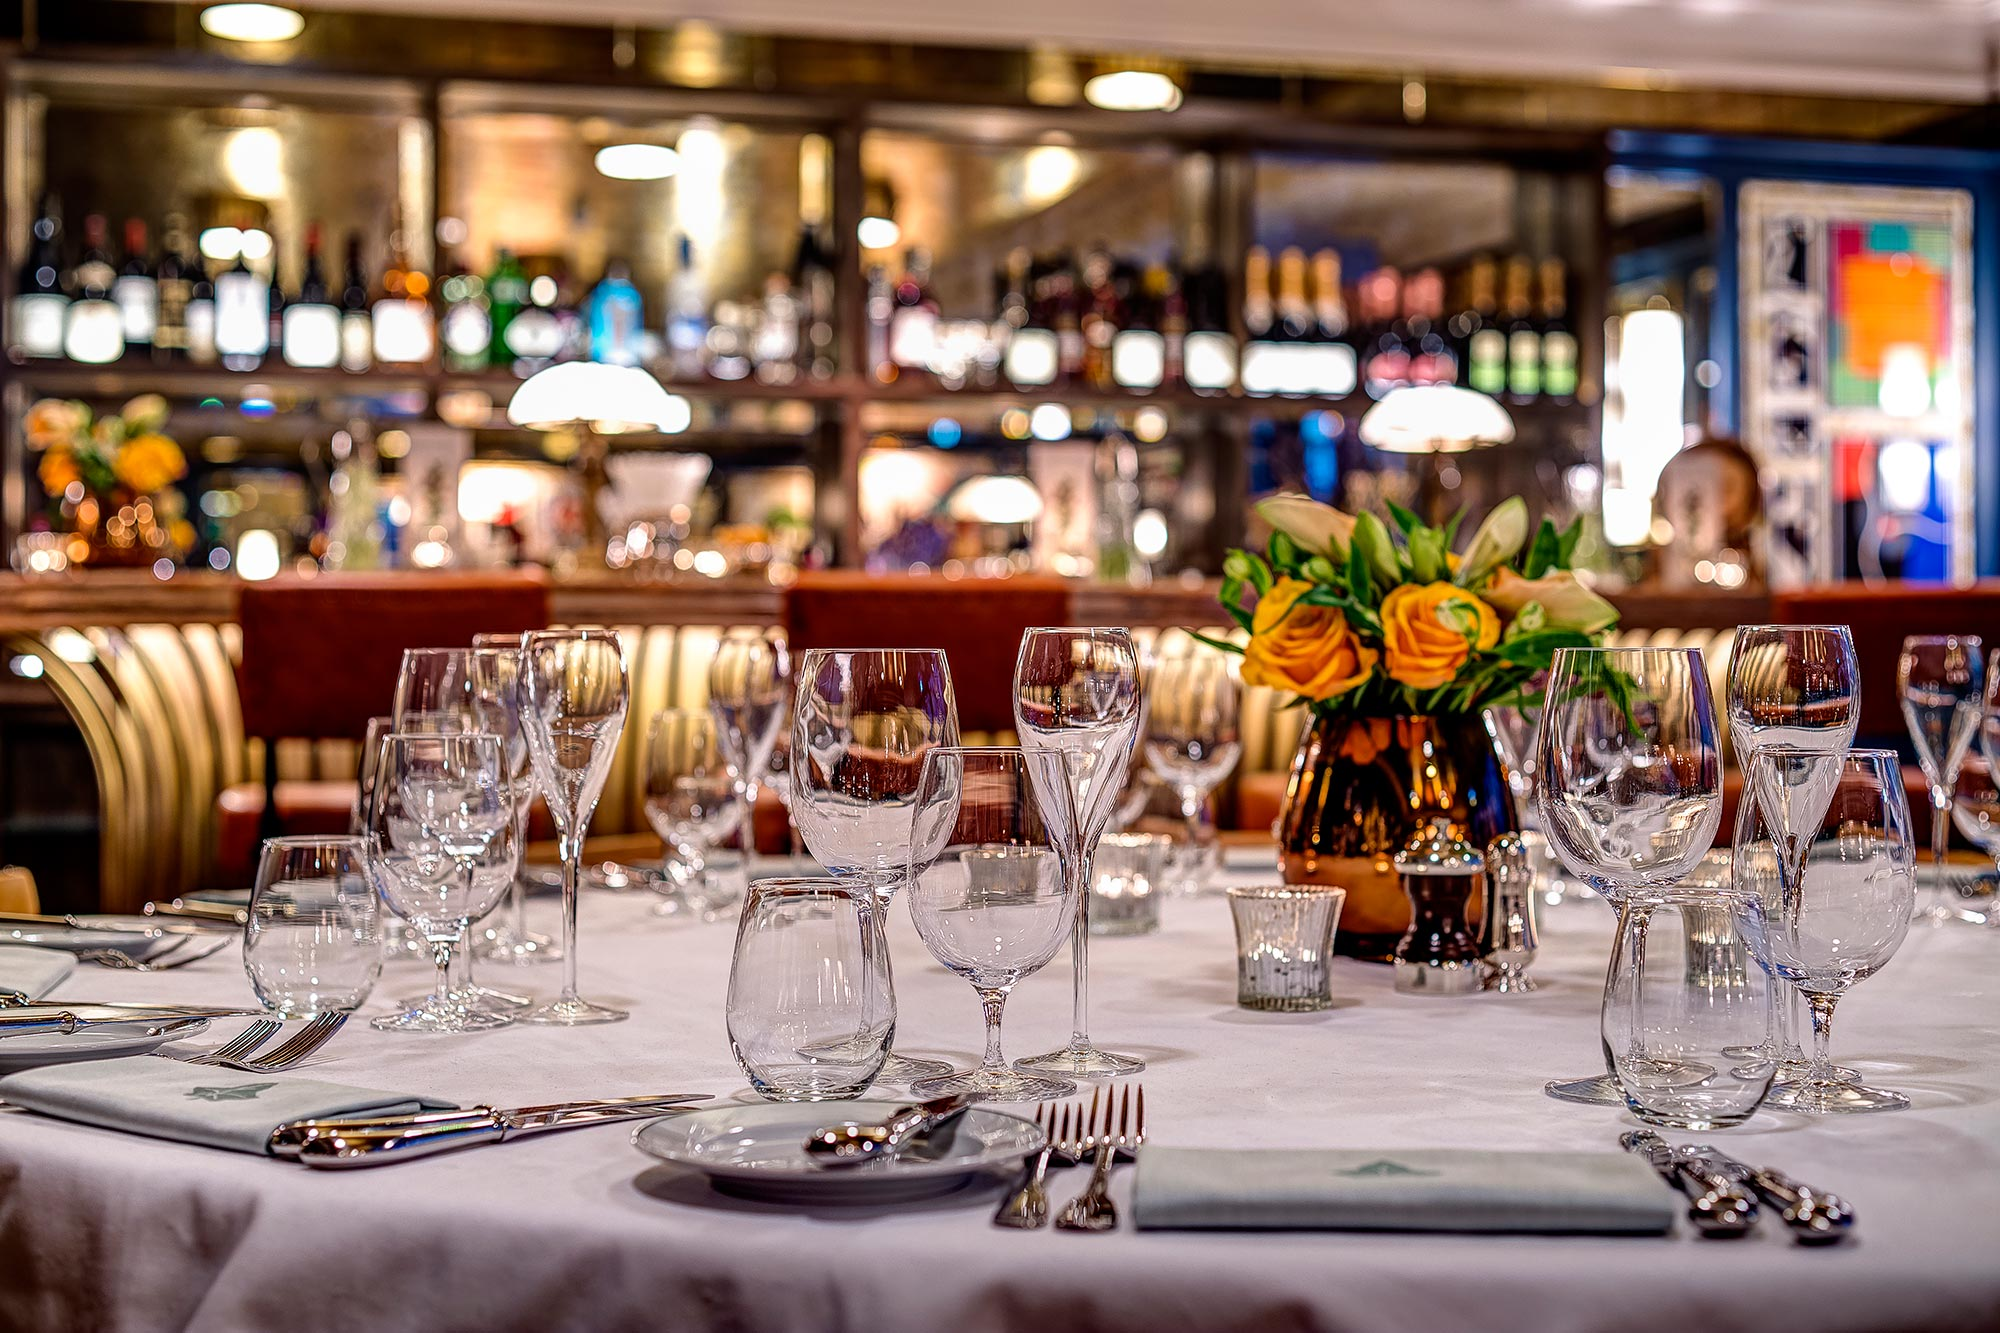 Private dining and hire the ivy soho brasserie london for Best private dining rooms west end london